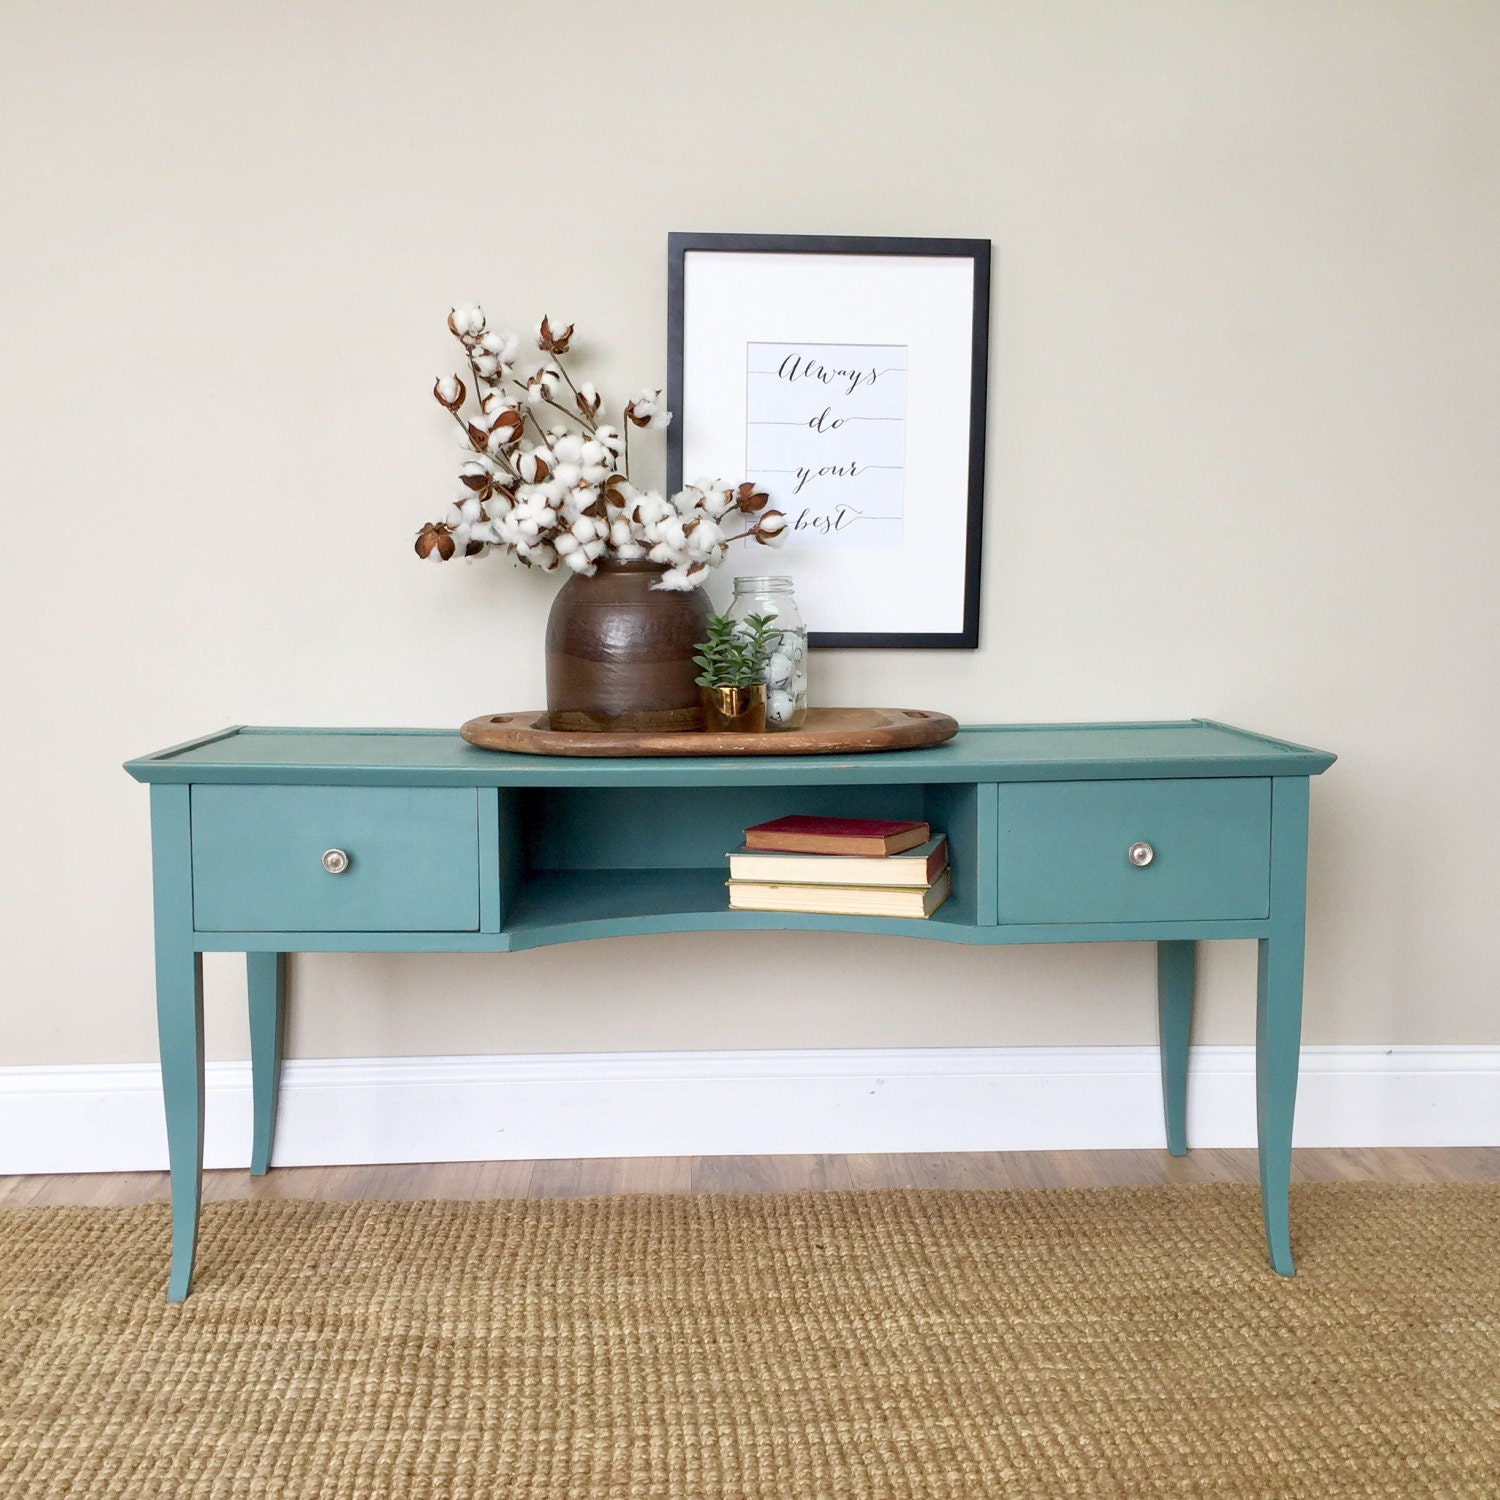 TV Media Console Teal Console Table Painted Furniture Behind